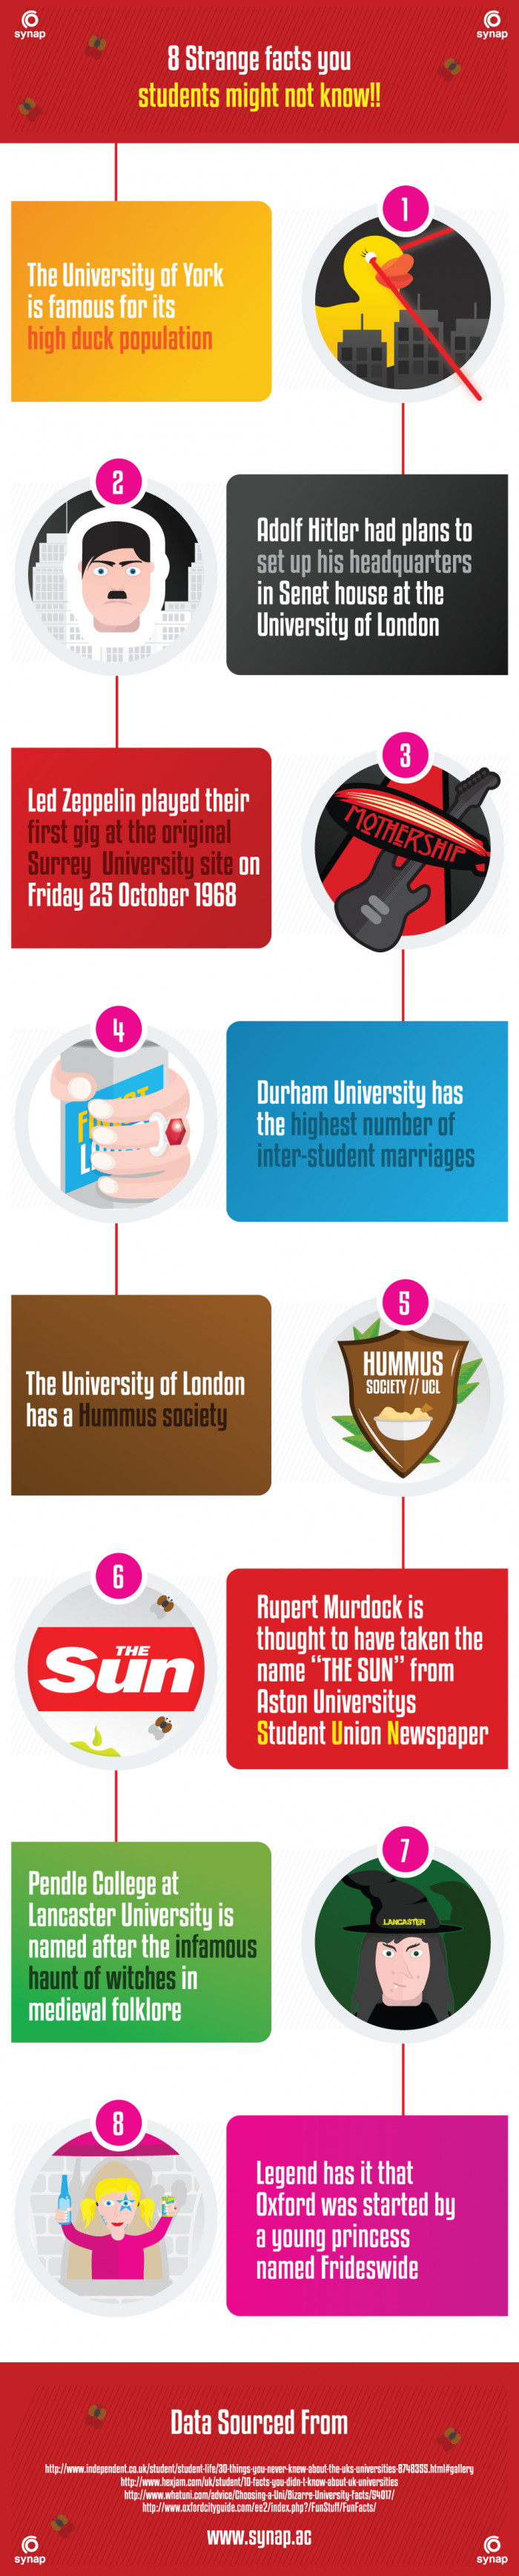 8 Strange Facts You Students Might Not Know